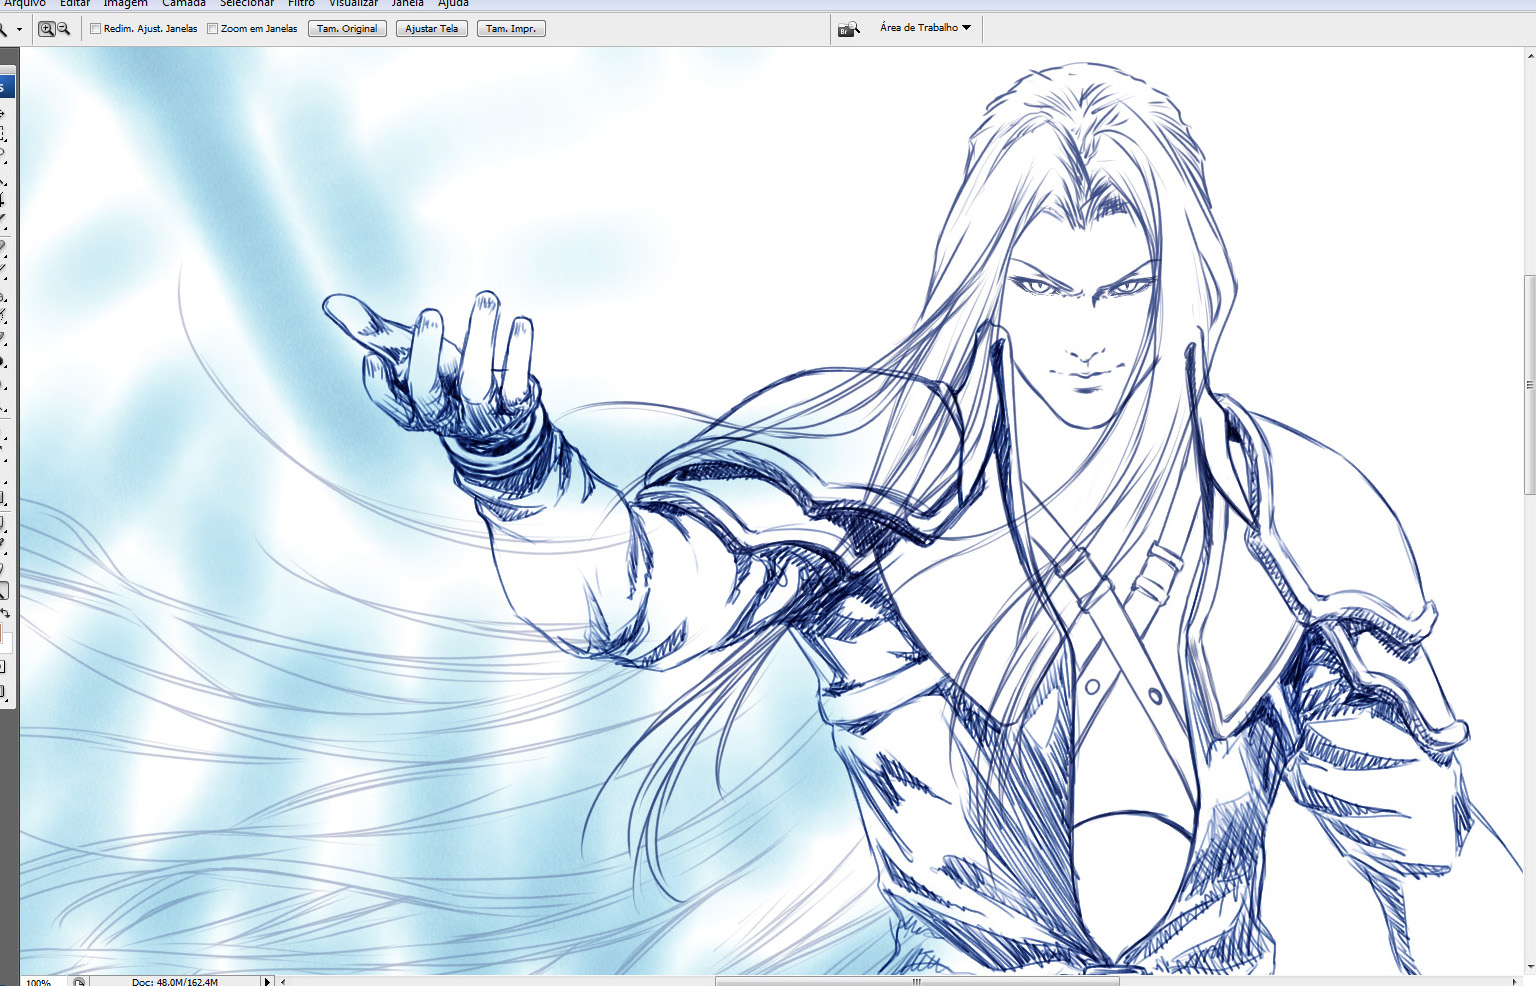 Another Sephiroth WIP by Washu-M